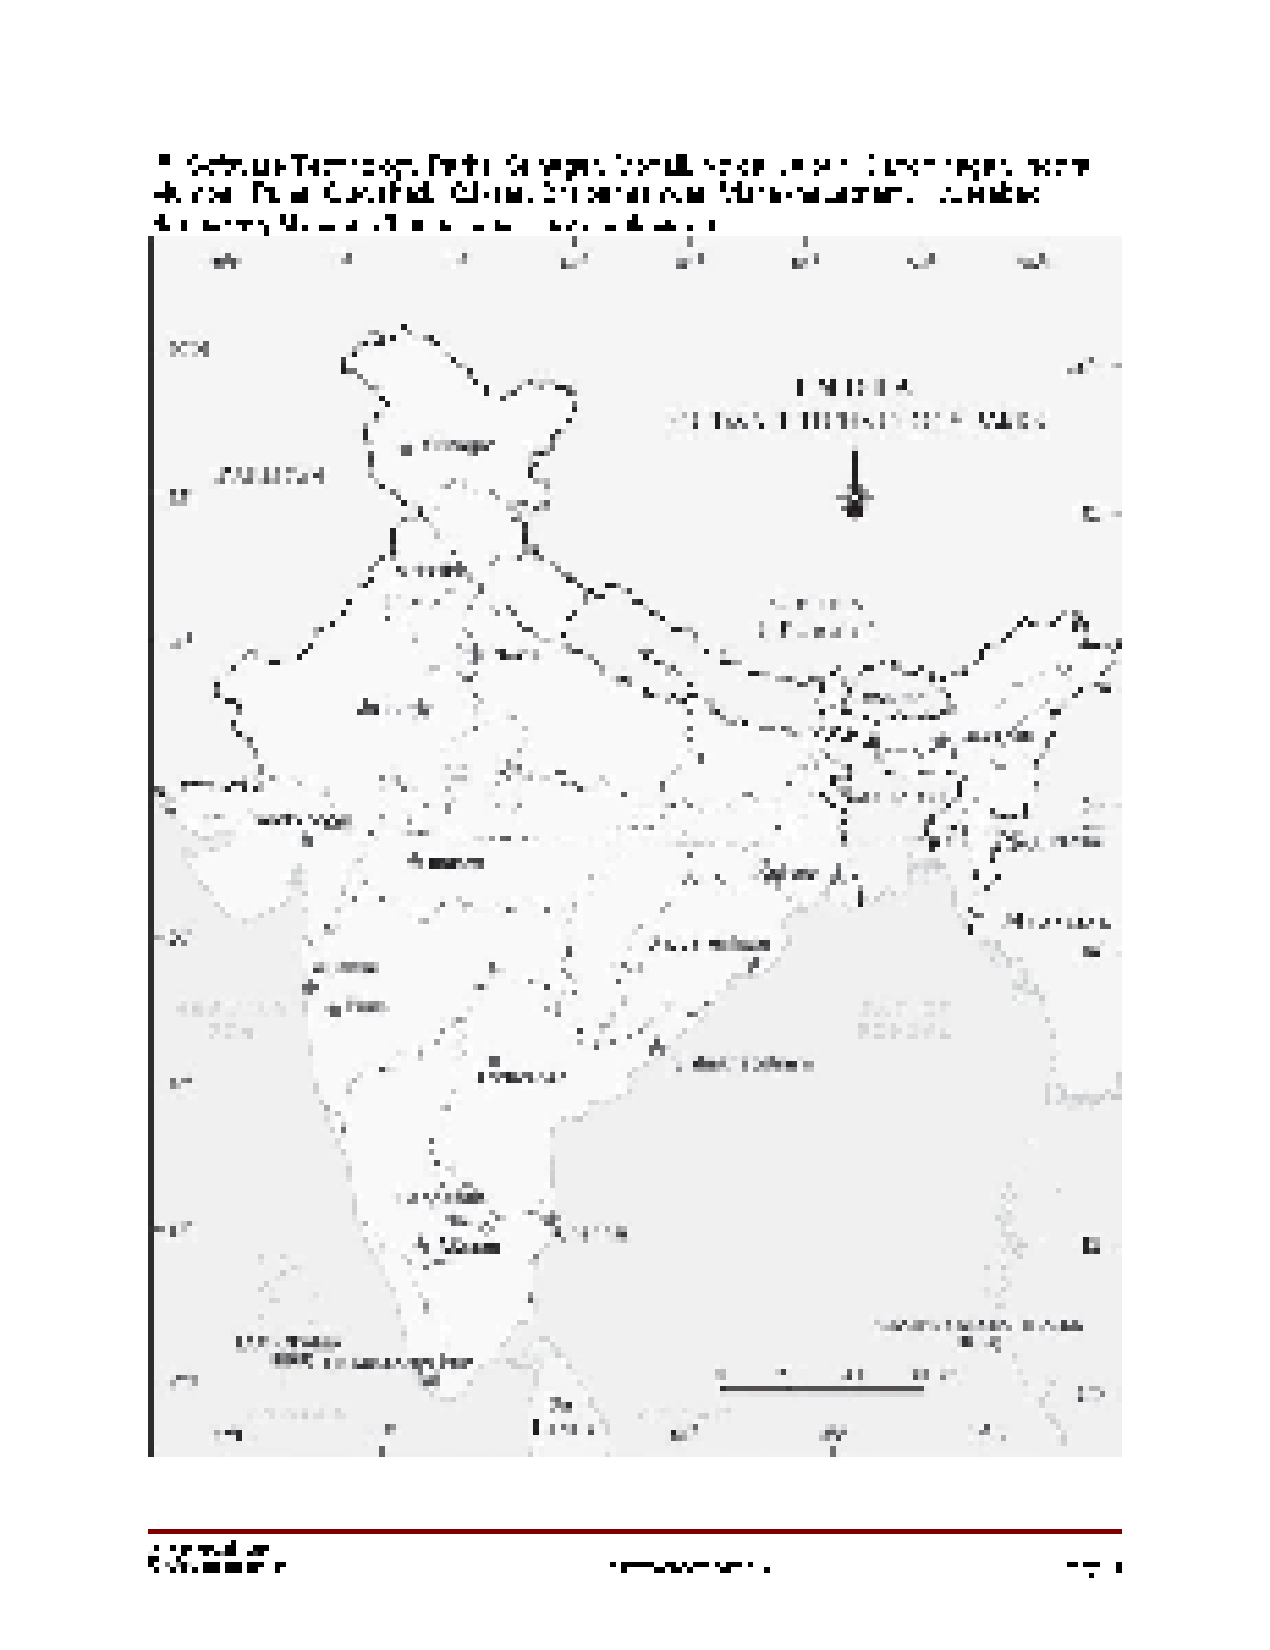 Solution geography outline political map of india studypool geographyoutline political map of indiaidentification only major soil typesryaveer singhpage 1chapter 3 water resourceslocating and labelling important thecheapjerseys Images